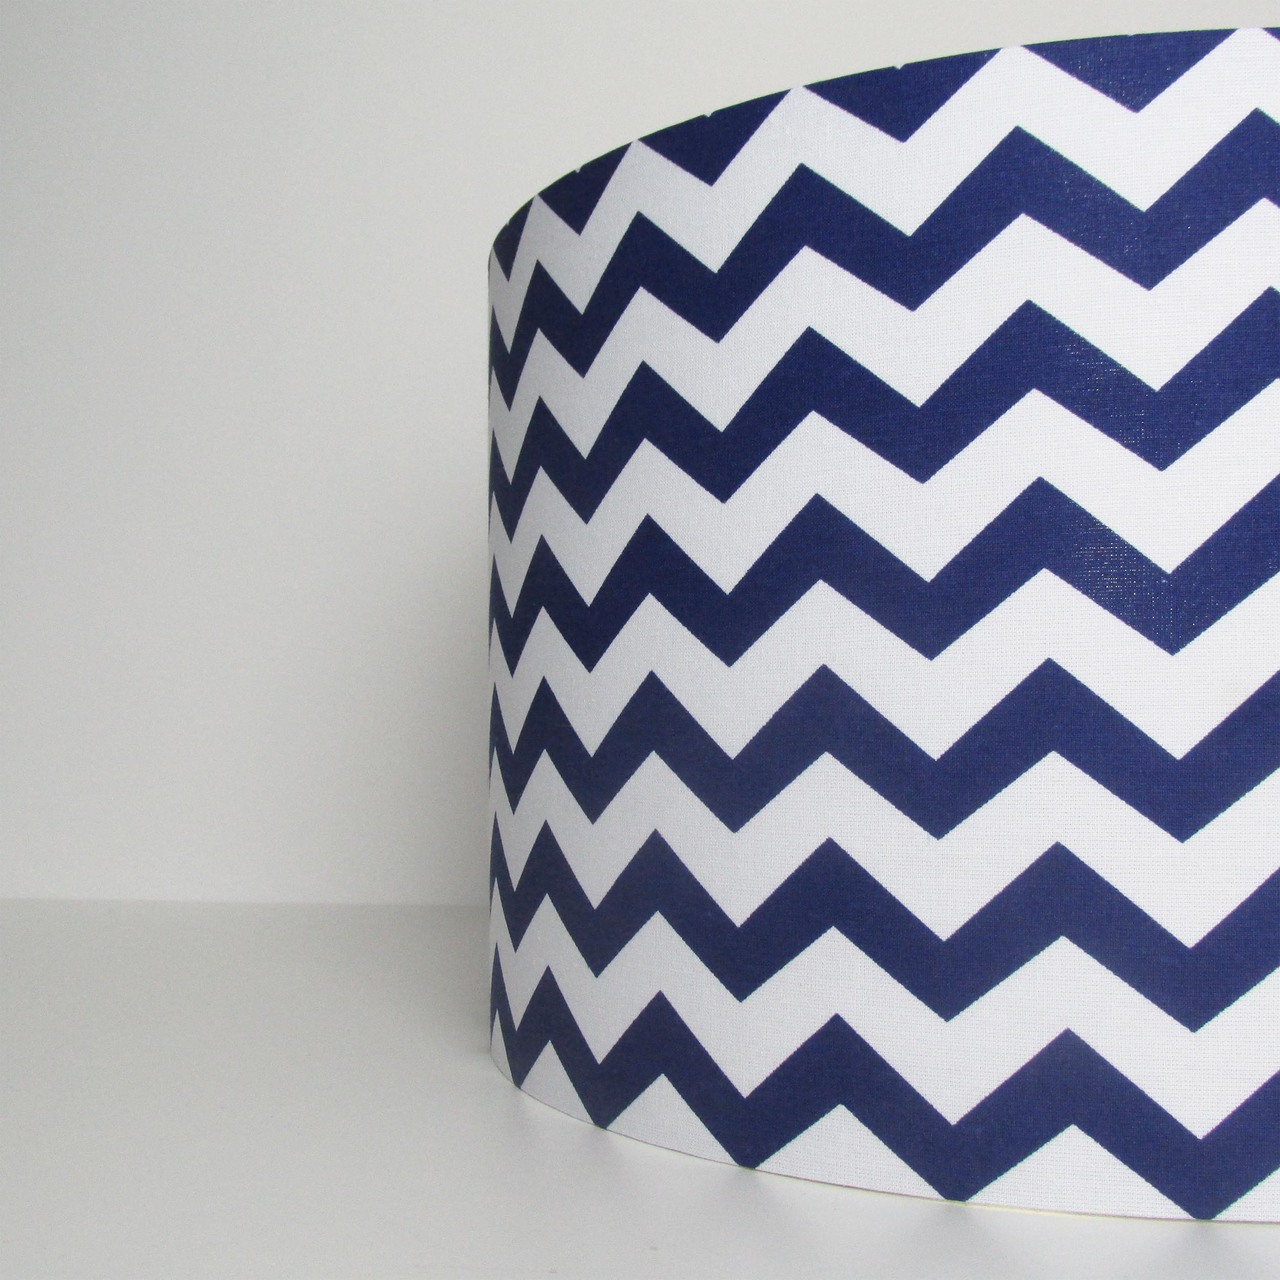 Blue Lampshade with White Chevrons Design